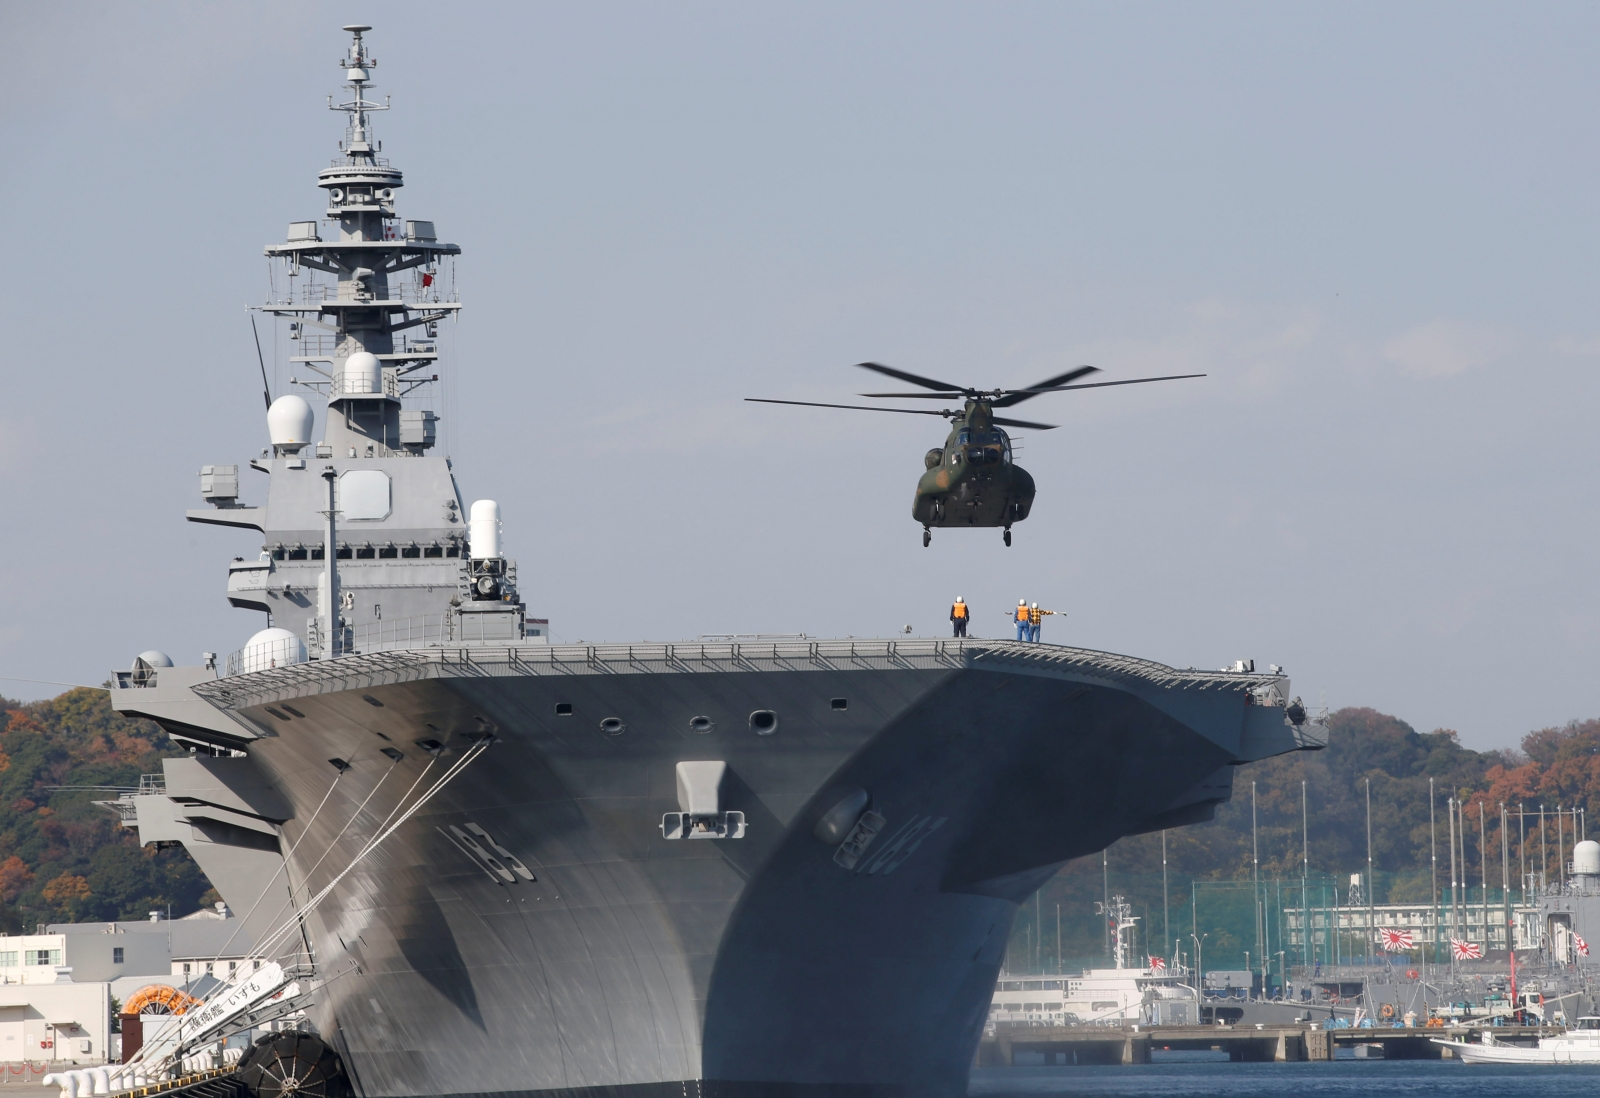 A helicopter lands on the Izumo, Japan Maritime Self Defense Force's (JMSDF) helicopter carrier